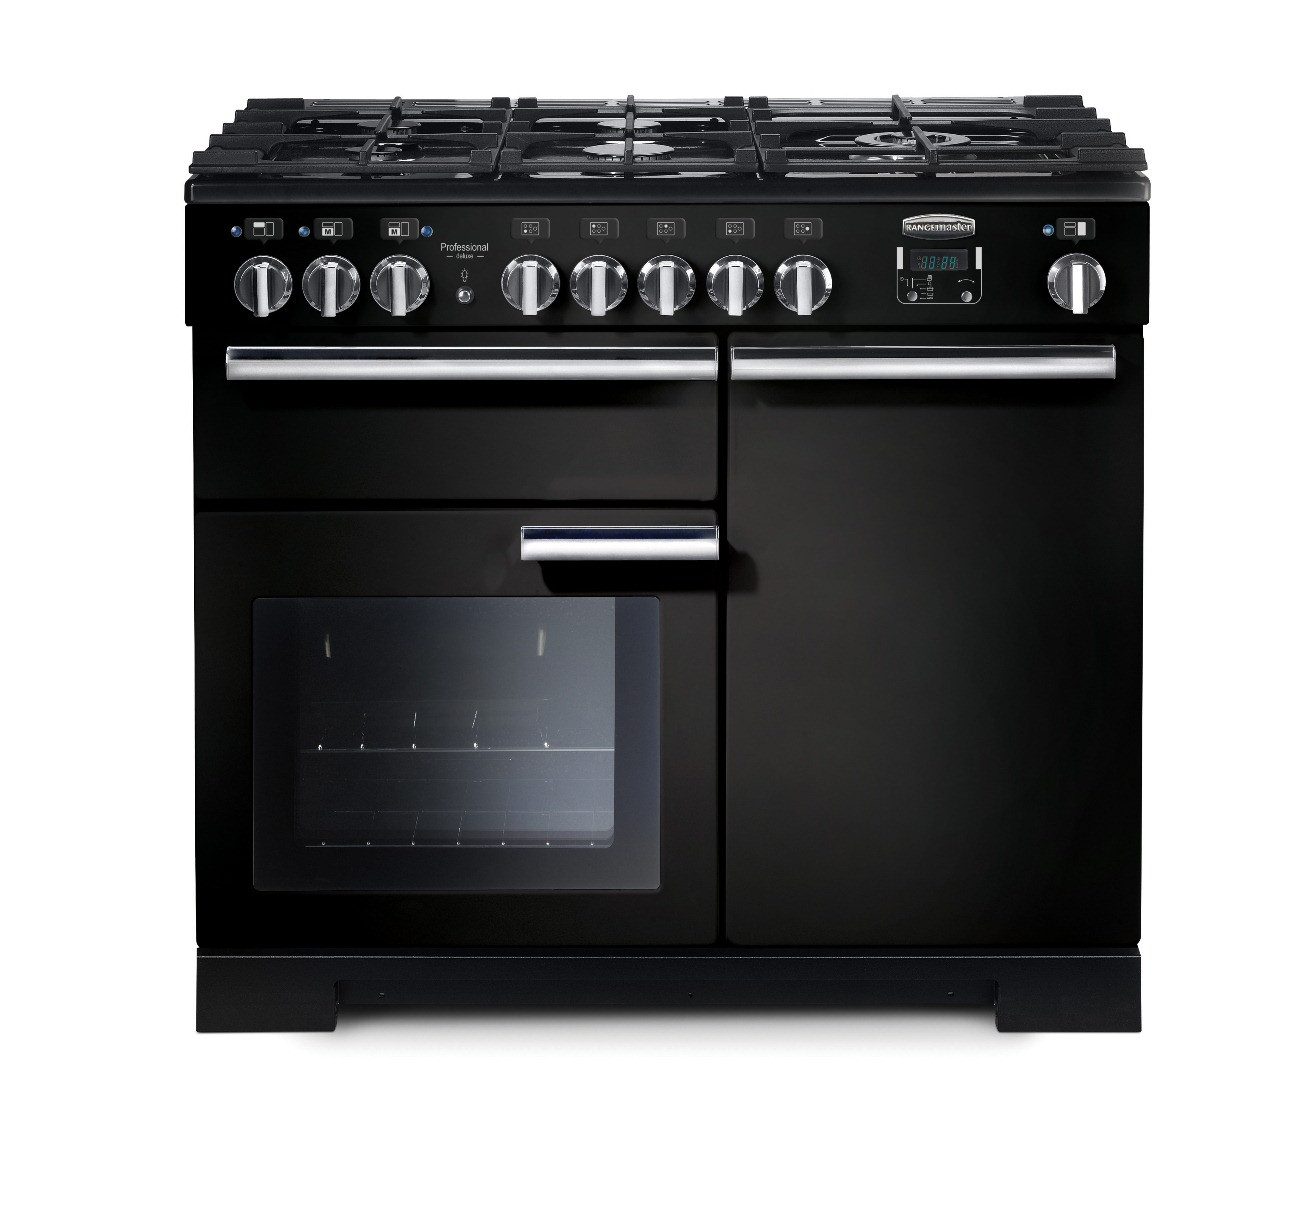 Rangemaster Professional Deluxe 100 Dual Fuel Black Range Cooker PDL100DFFGB/C 97560